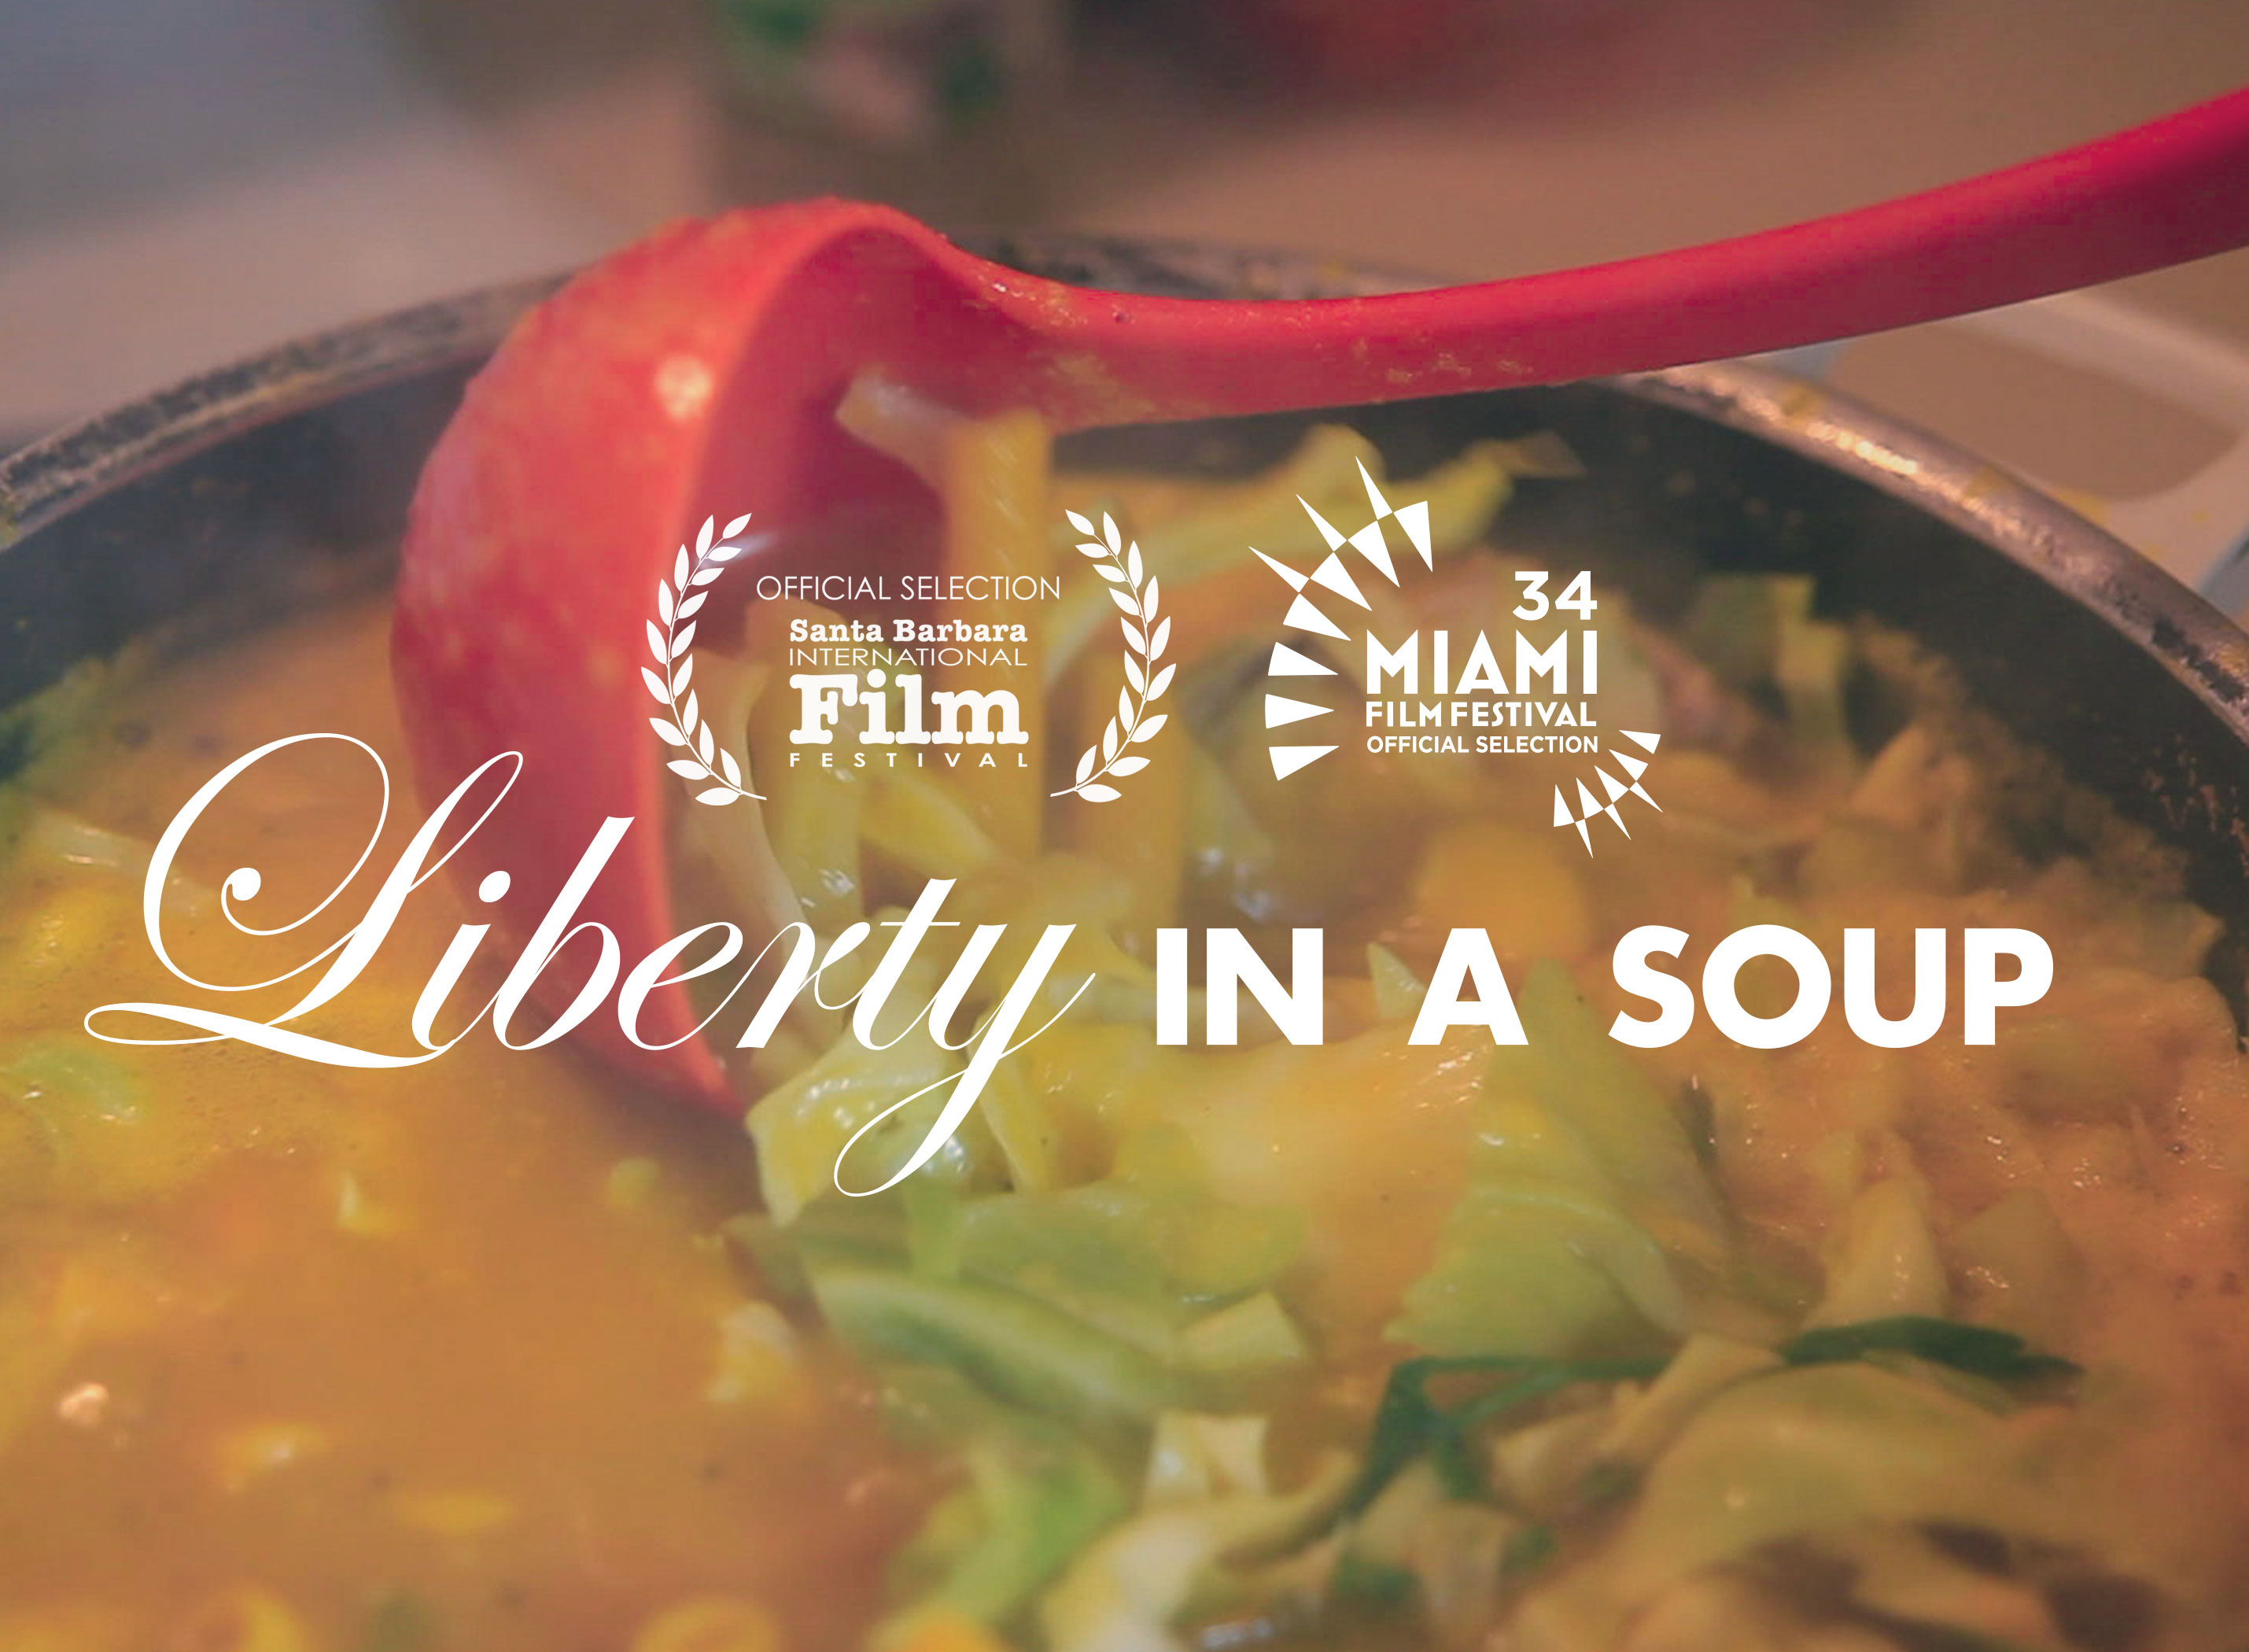 liberty_in_soup_c